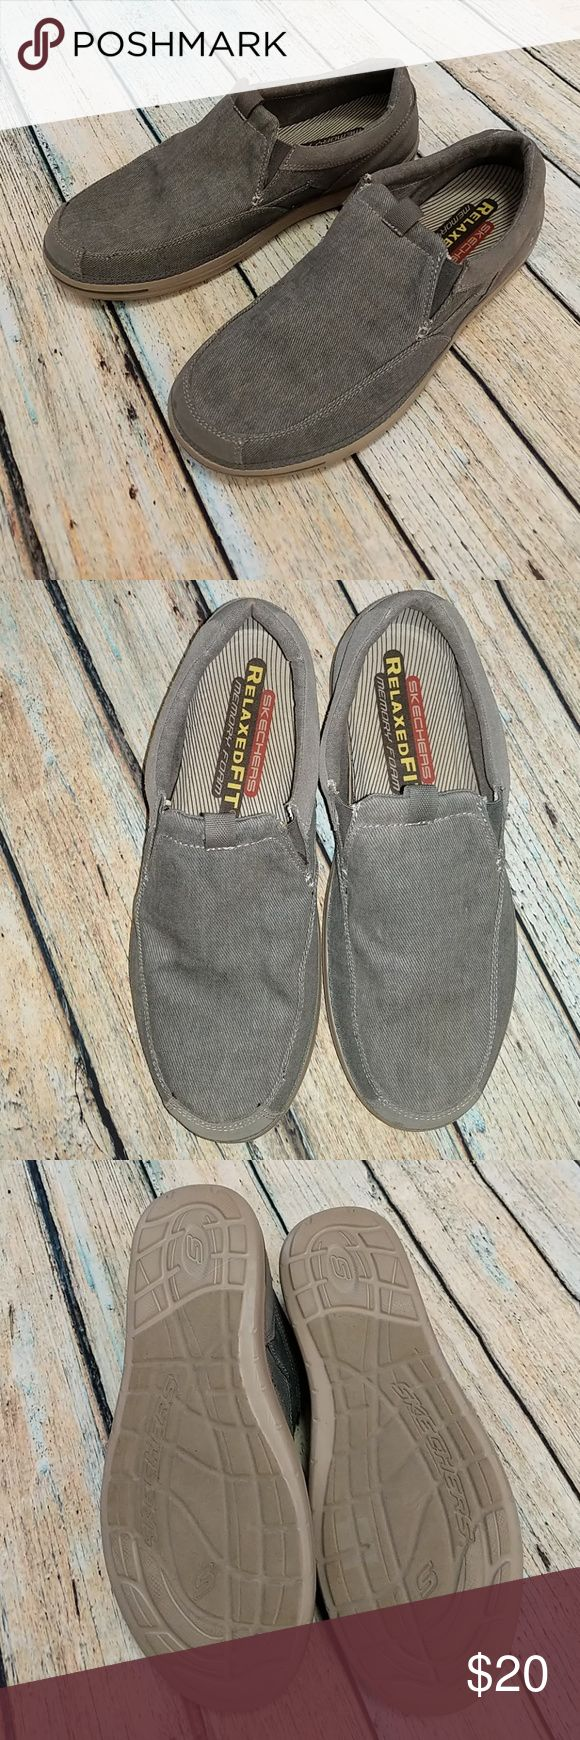 ⭐Men's memery foam skechers Excellent condition, never worn. Sketchers relaxed fit memery foam slip on sneaker Great shoe for warmer weather. Canvas material w/ suede heel Skechers Shoes Loafers & Slip-Ons